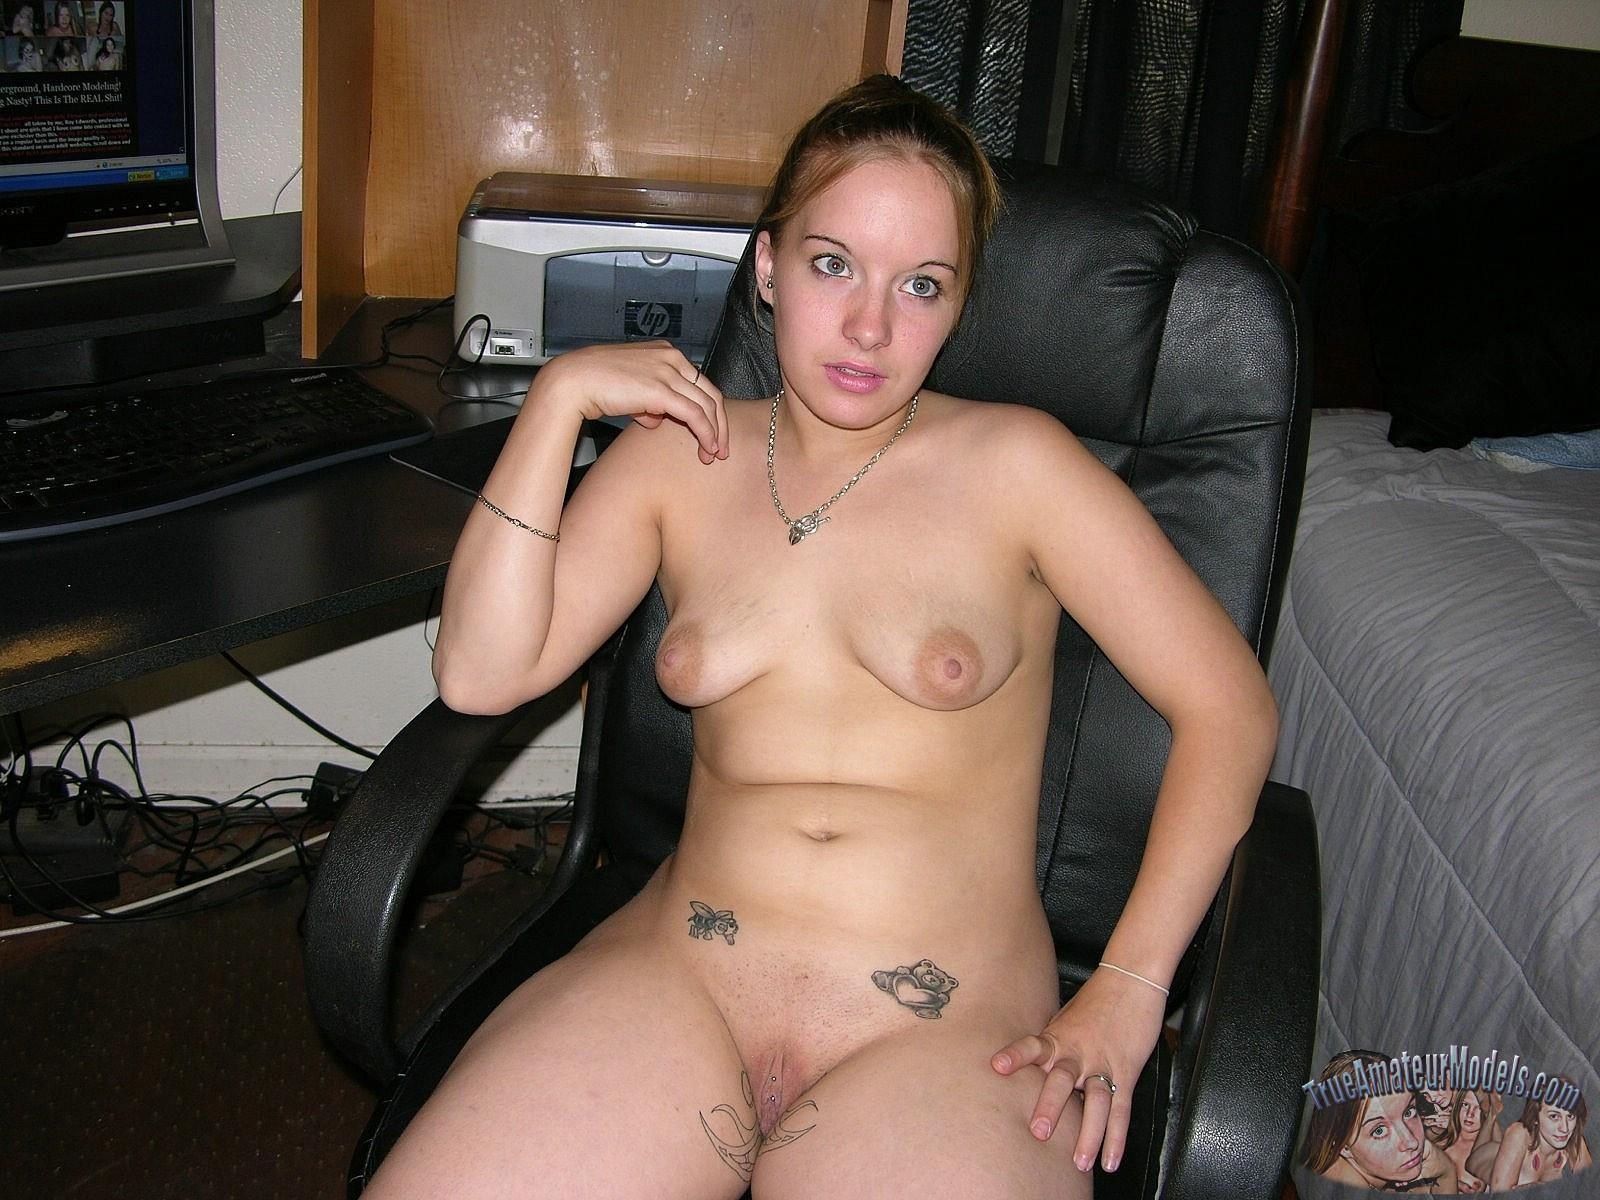 Blonde Amateur Teen Amber Posing Fully Nude At Home  Coed -2914